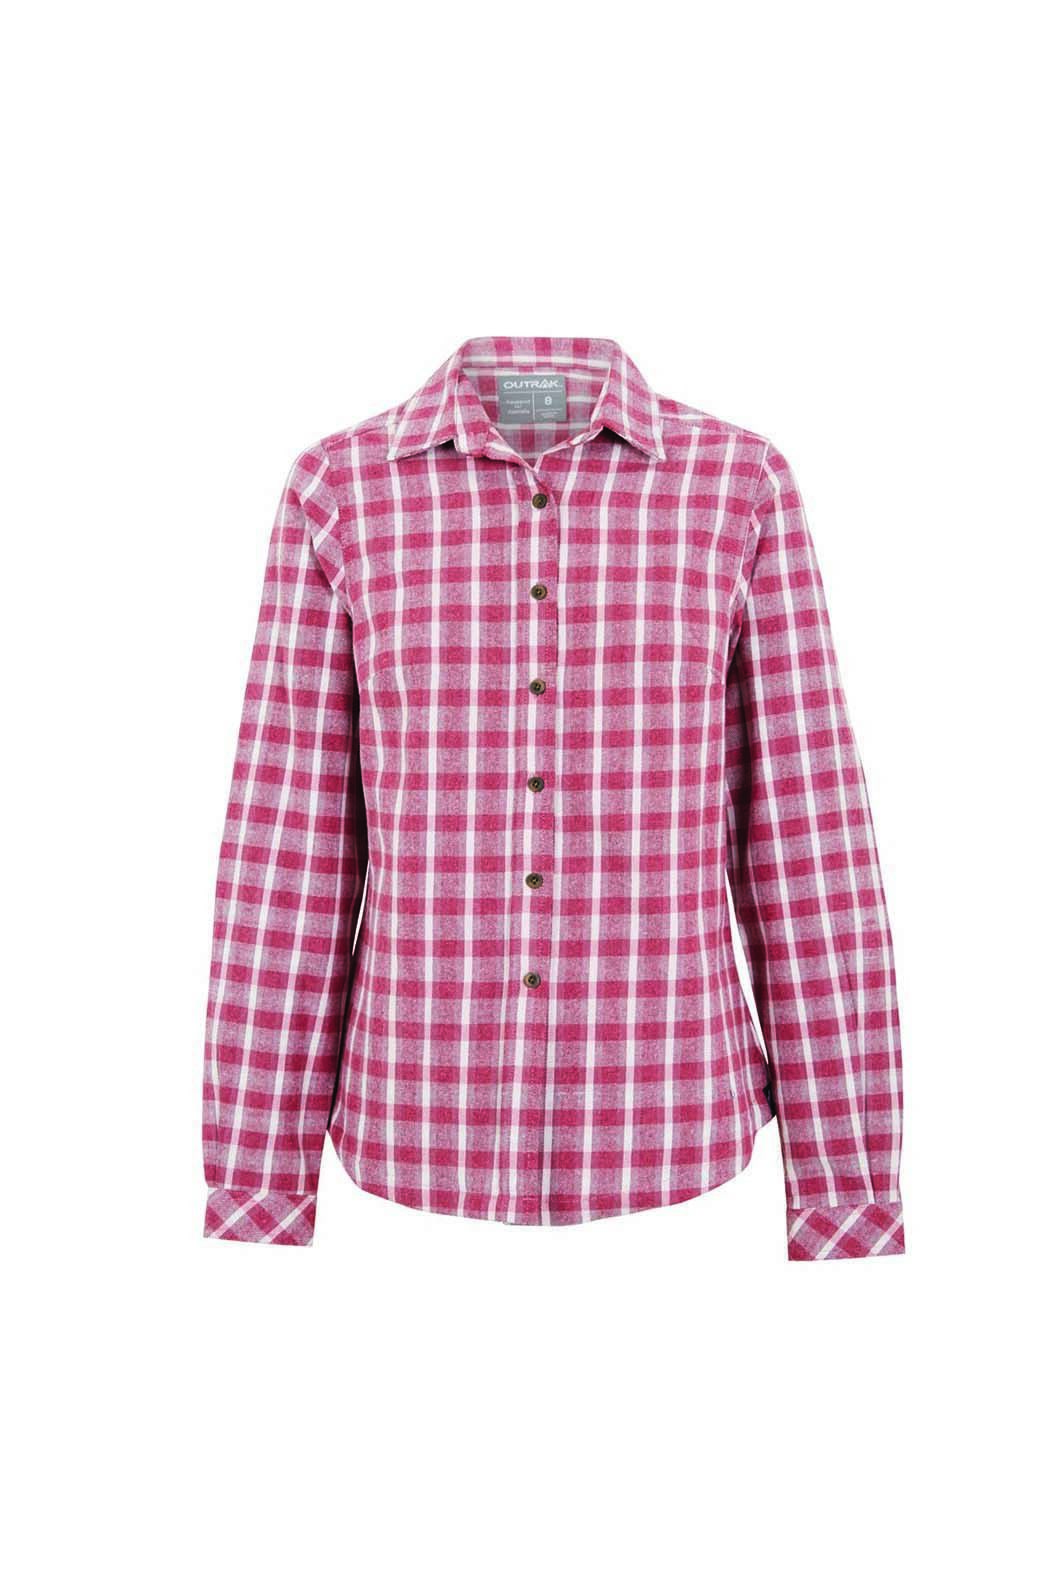 Outrak Women's Flannel Long Sleeve Shirt Wine Check, WINE CHECK, hi-res